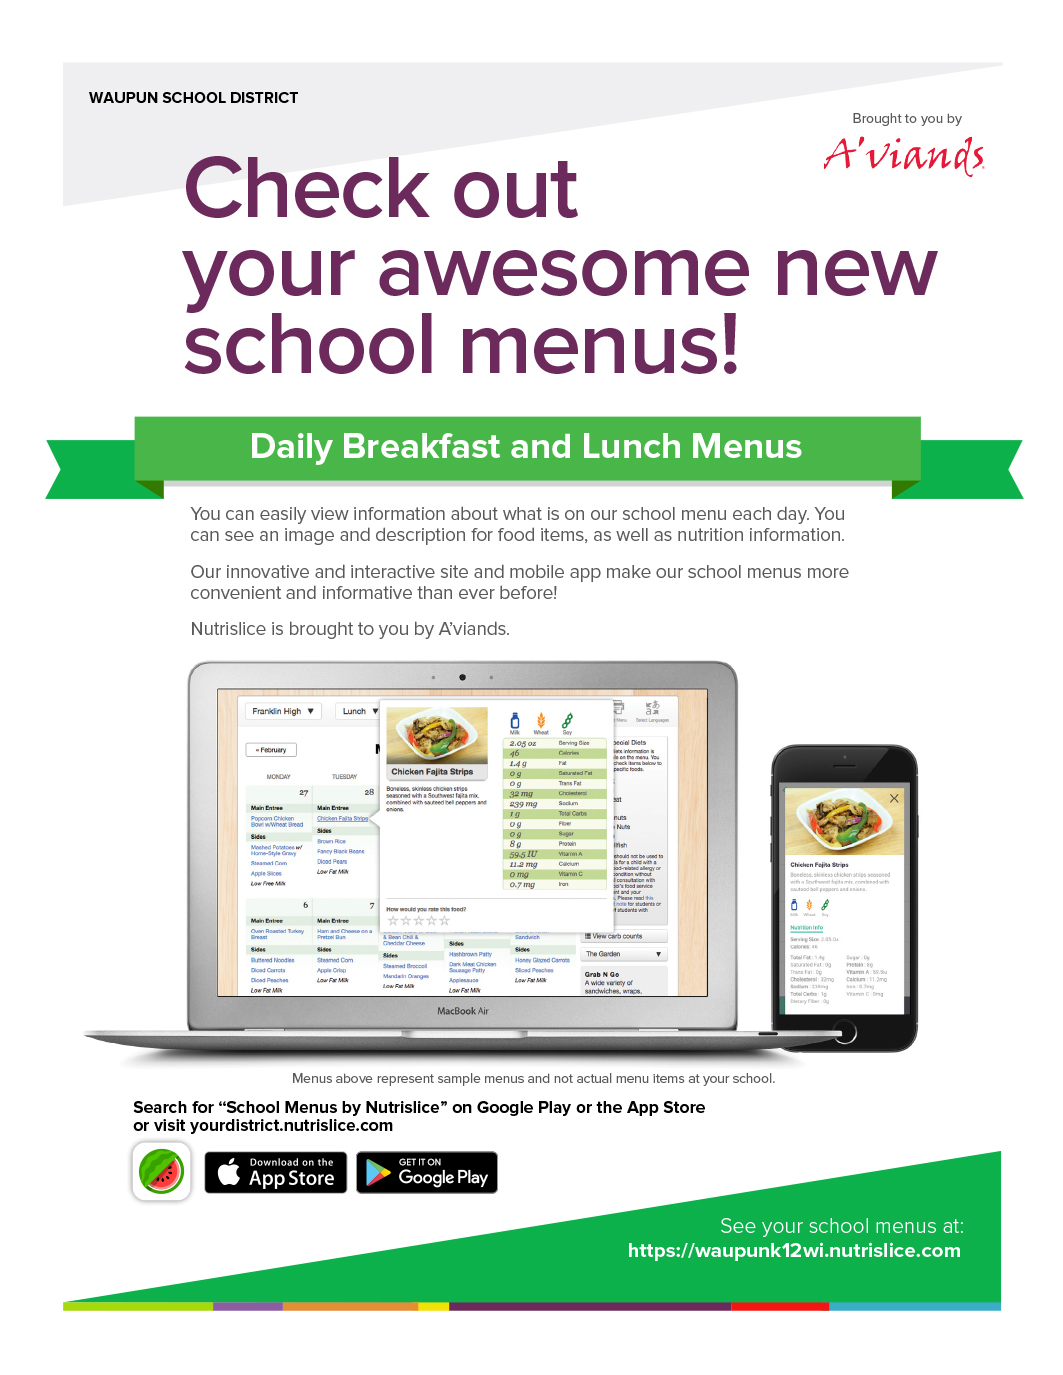 Check out your awesome new school menus! - app info